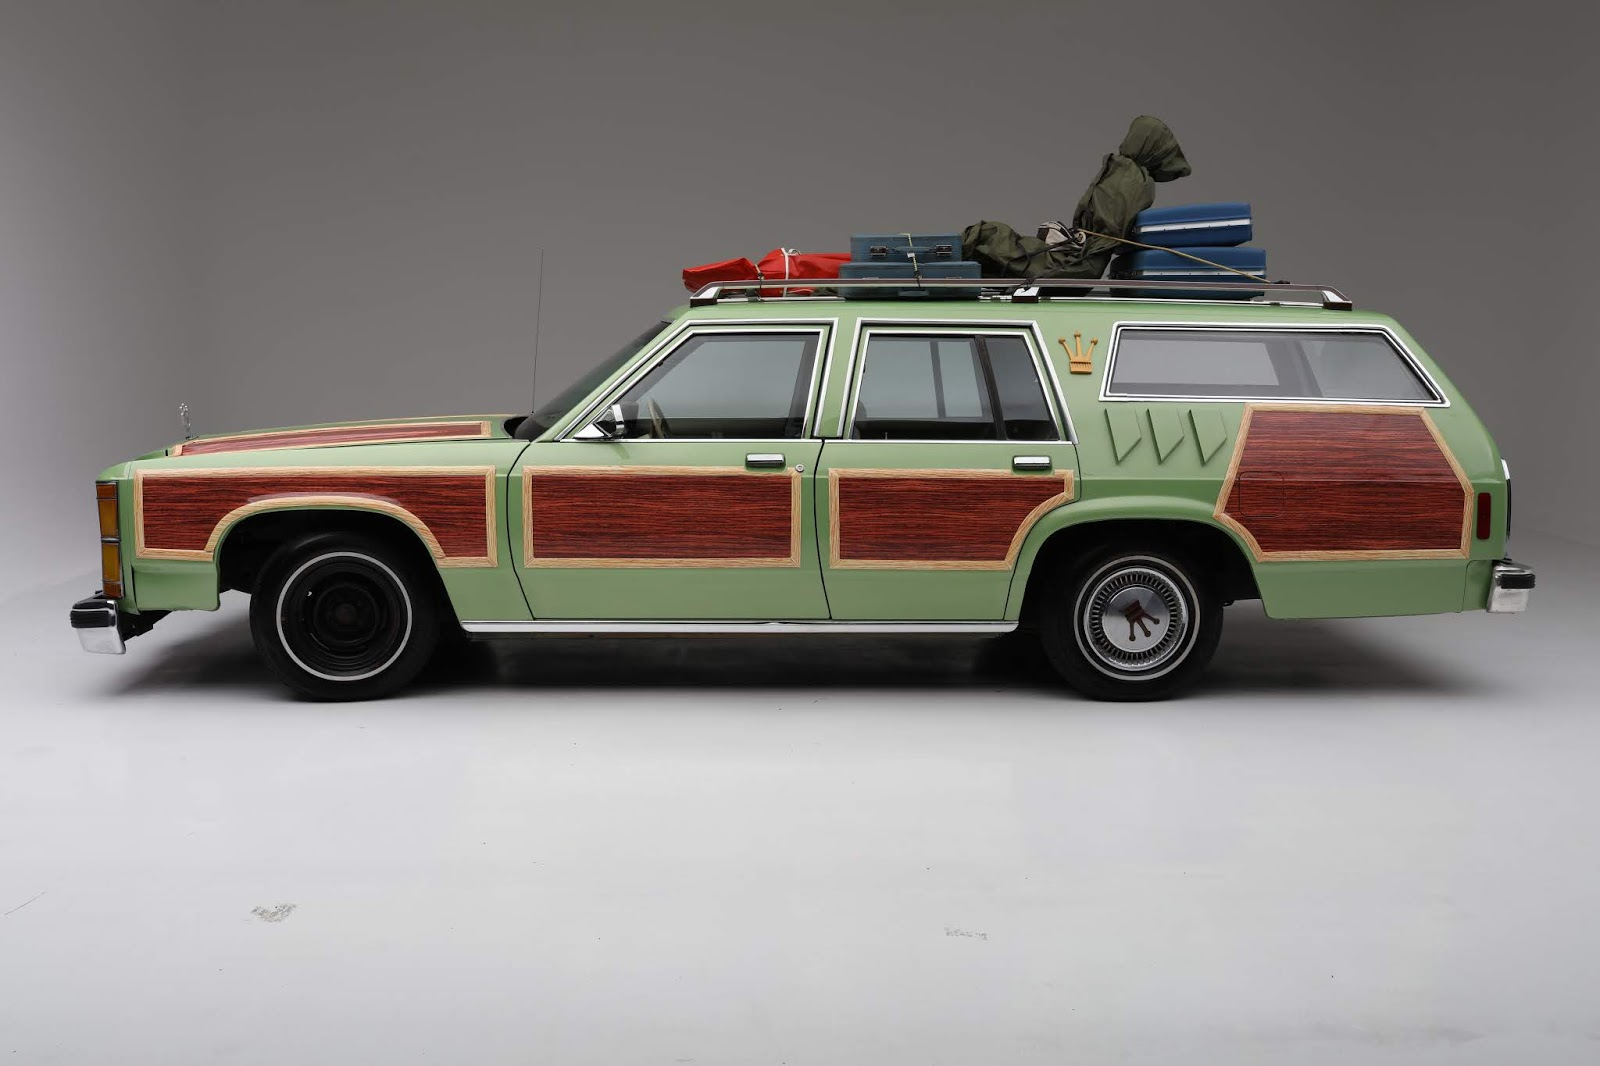 The Griswolds Family Truckster wird versteigert | EIN 1981 FORD LTD CUSTOM STATION WAGON